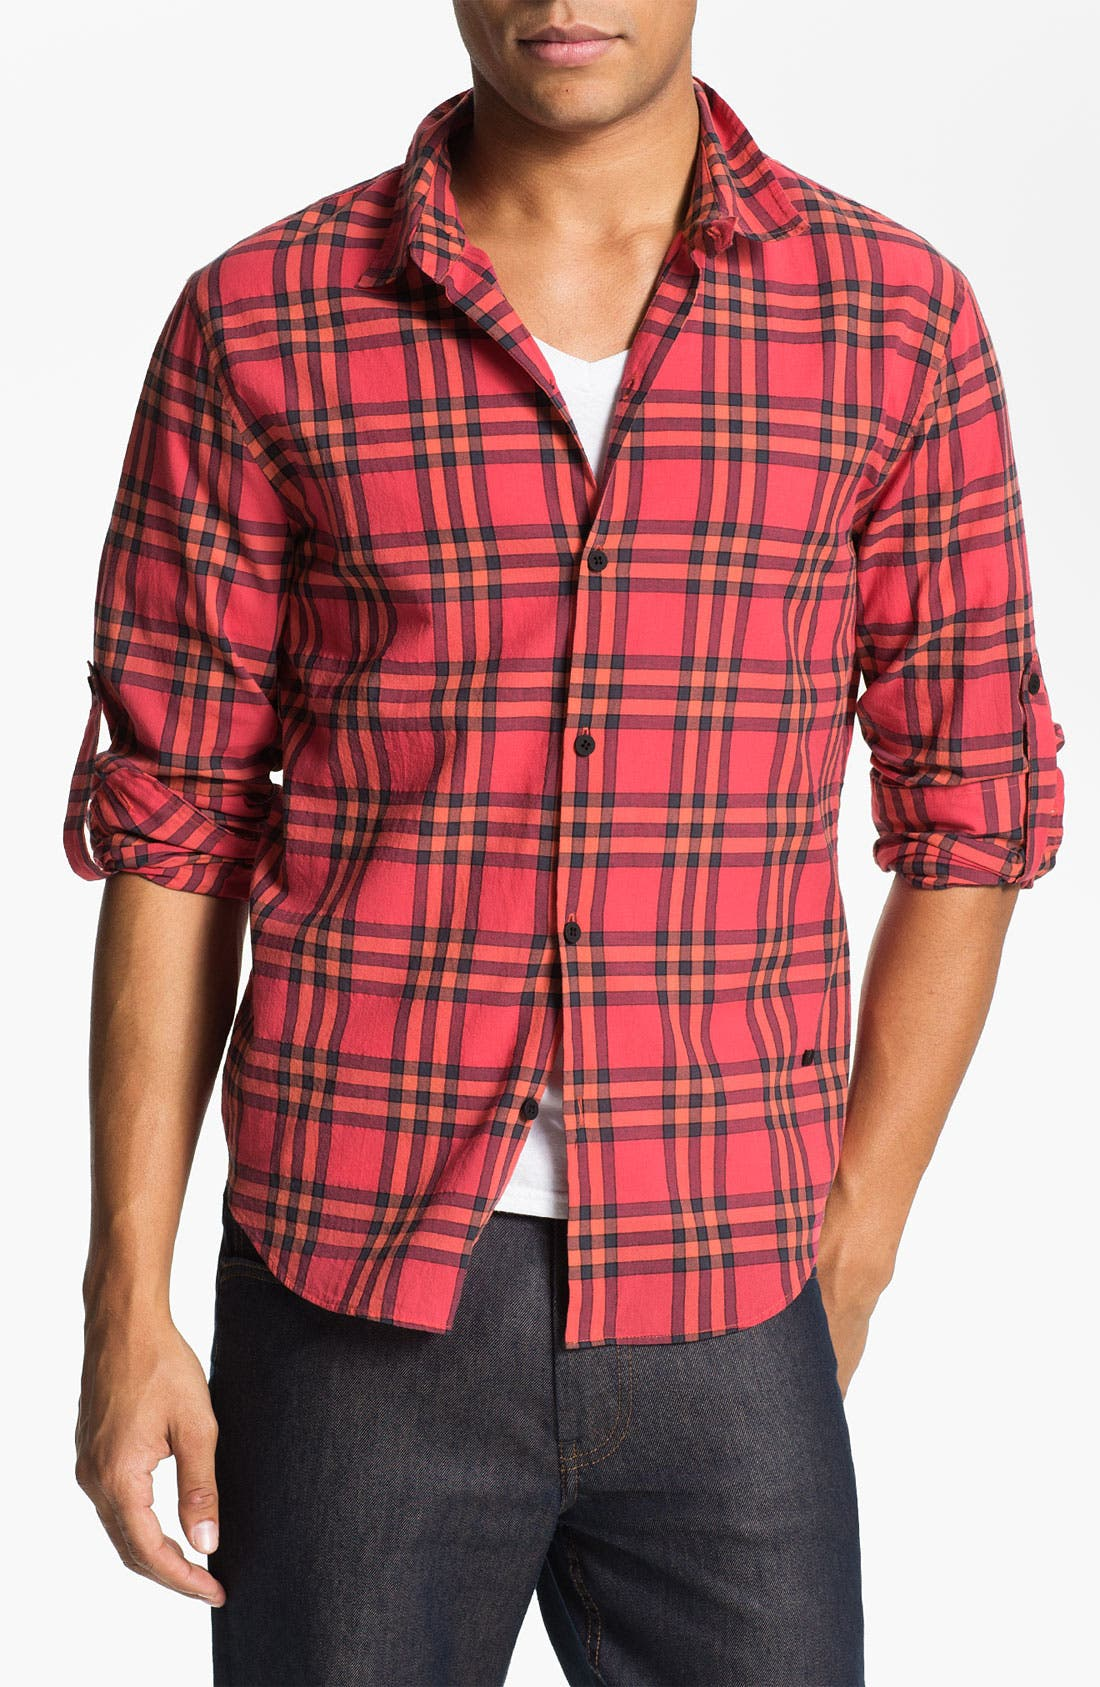 Main Image - MARC BY MARC JACOBS 'Nico' Plaid Woven Shirt